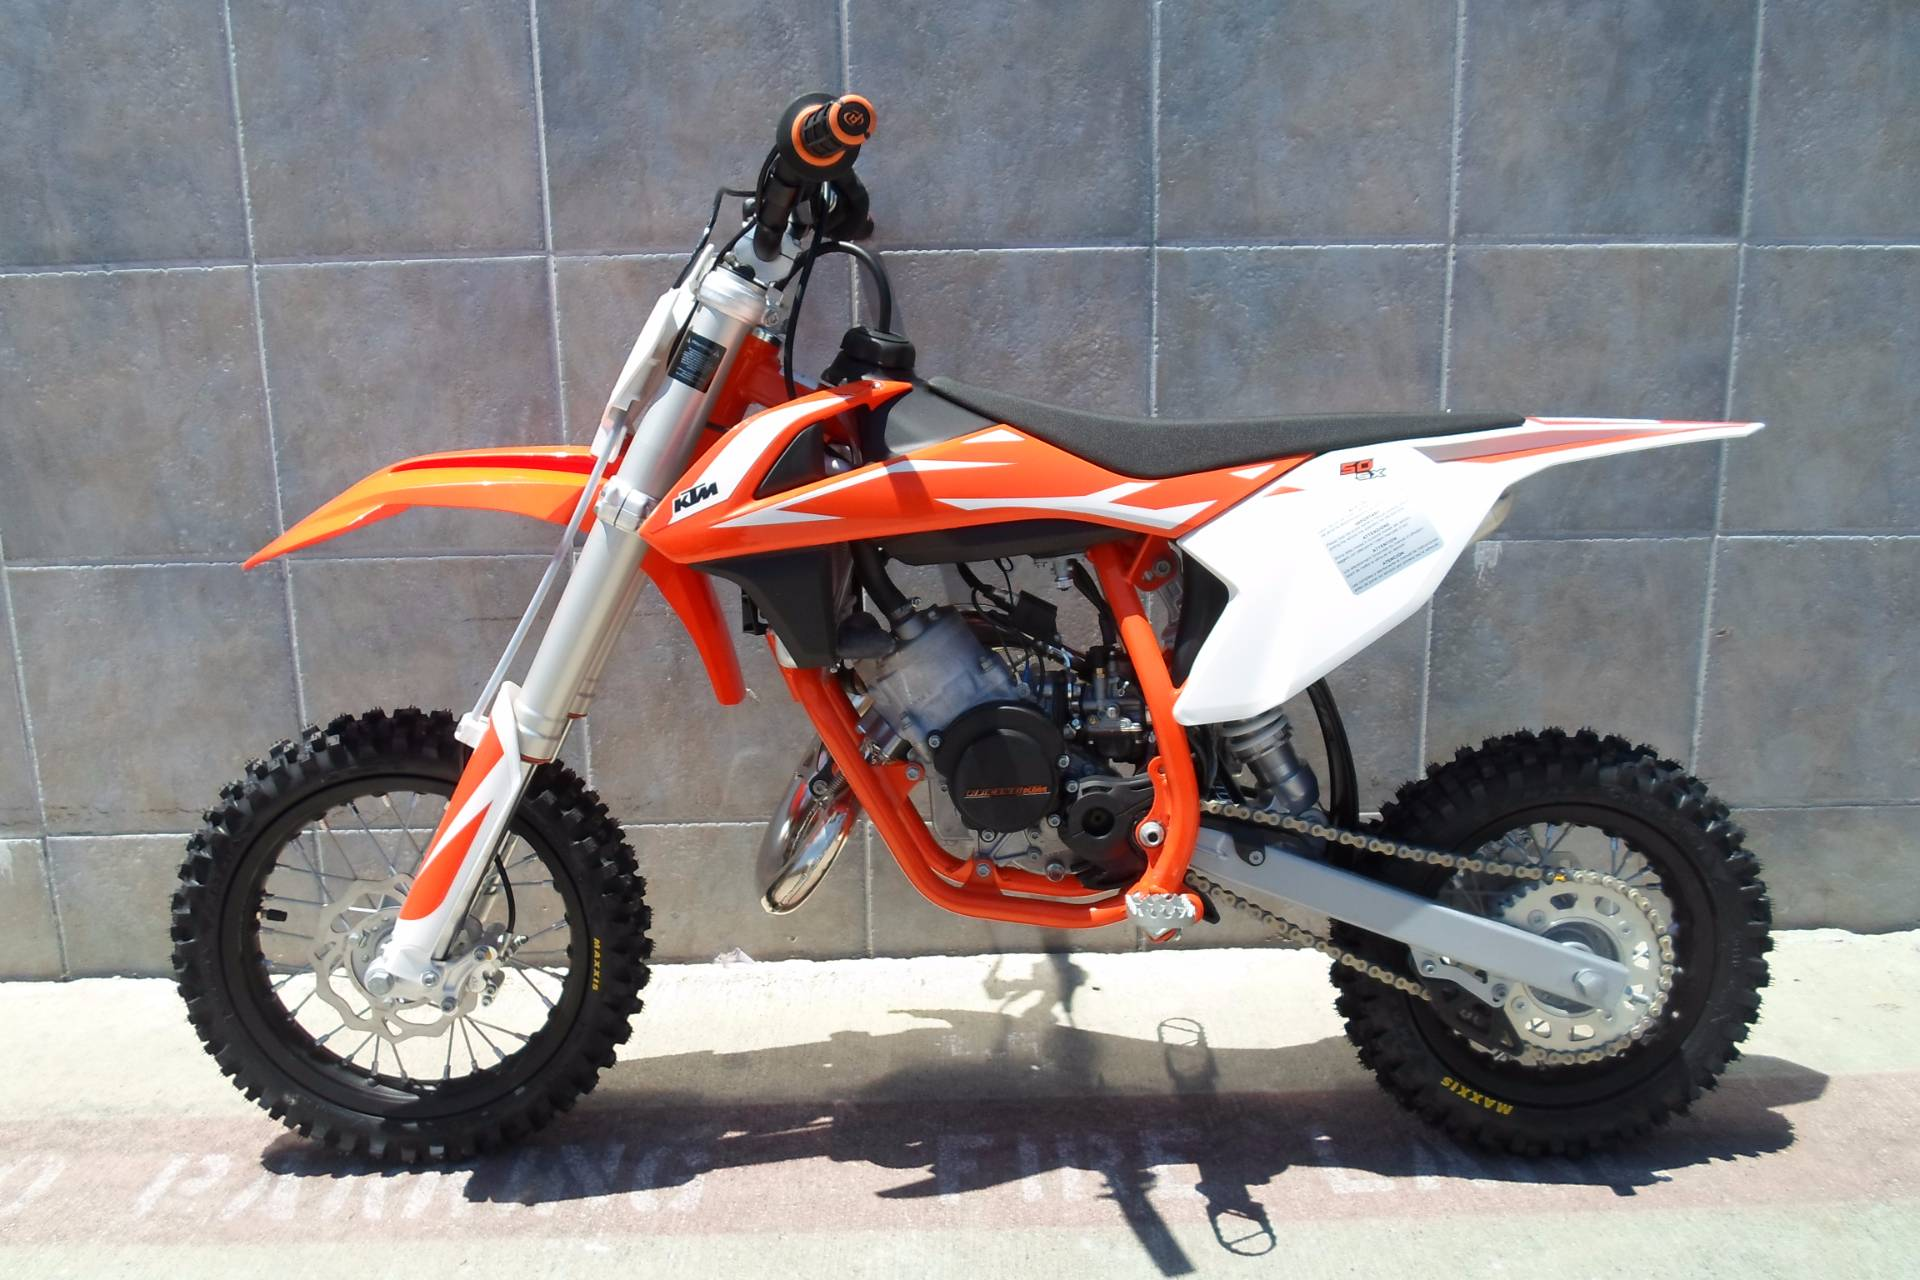 2018 ktm catalog.  catalog 2018 ktm 50 sx in san marcos california throughout ktm catalog